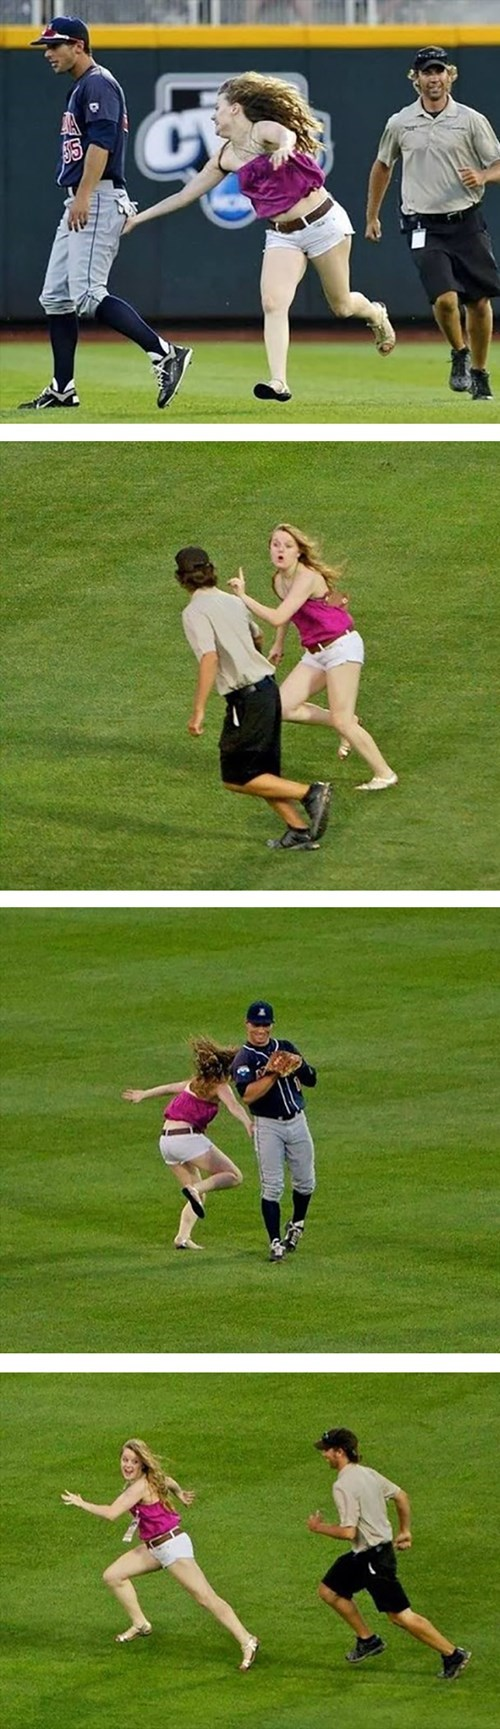 baseball fans streakers she touched the butt - 8092315648